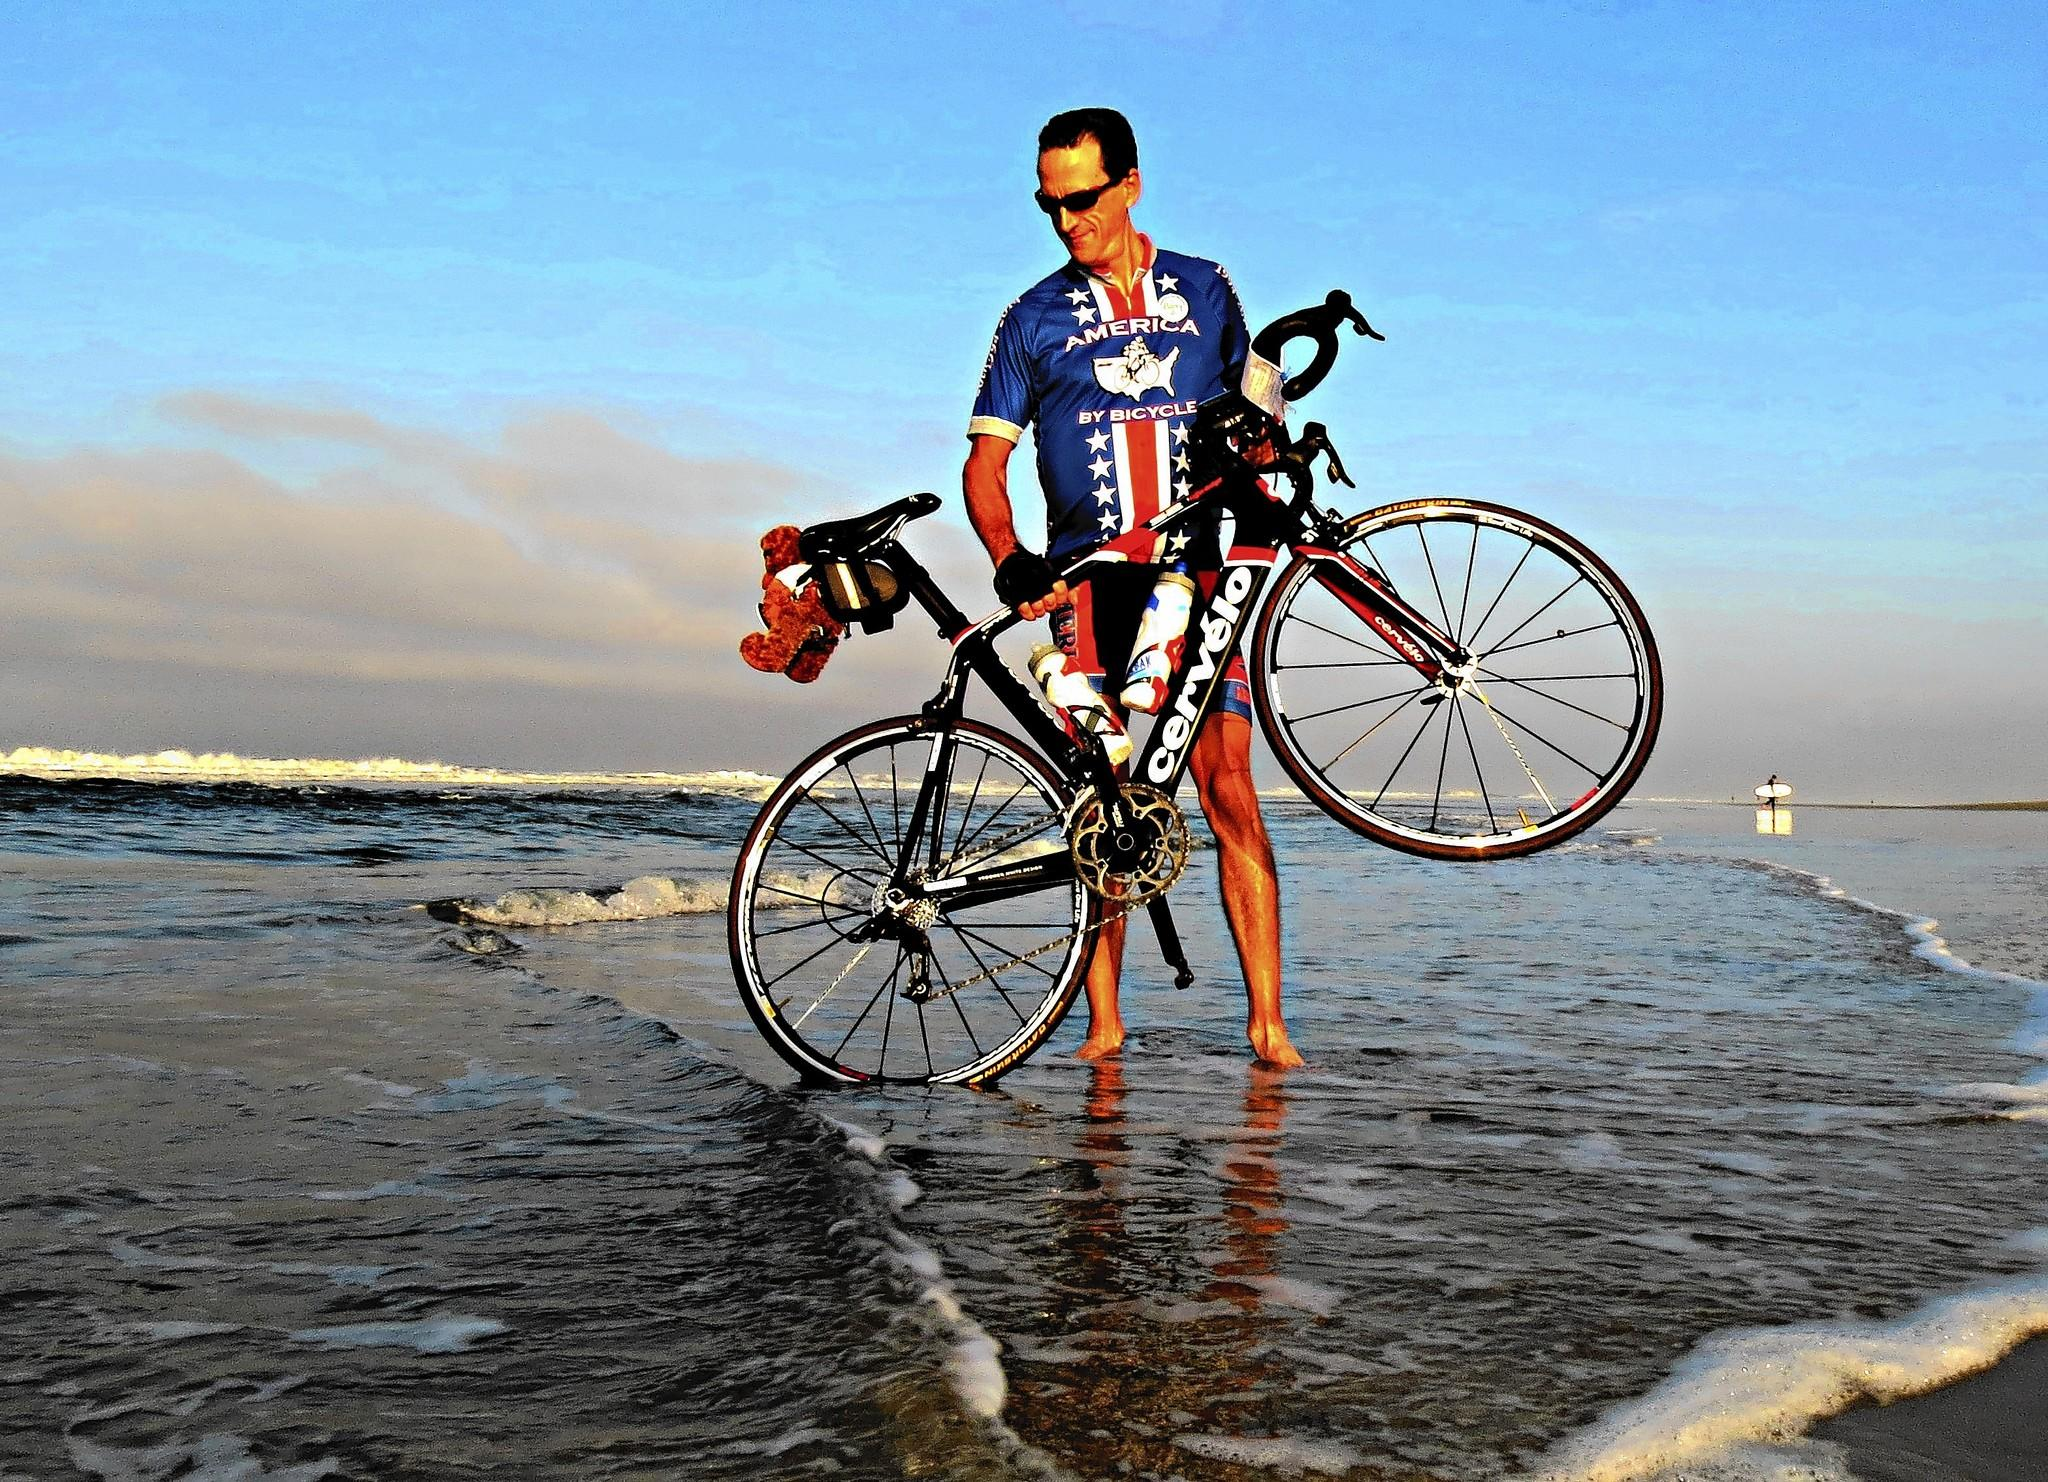 Barry Haarde dips the wheel of his bike into the Pacific Ocean before embarking on his third cross-country ride.